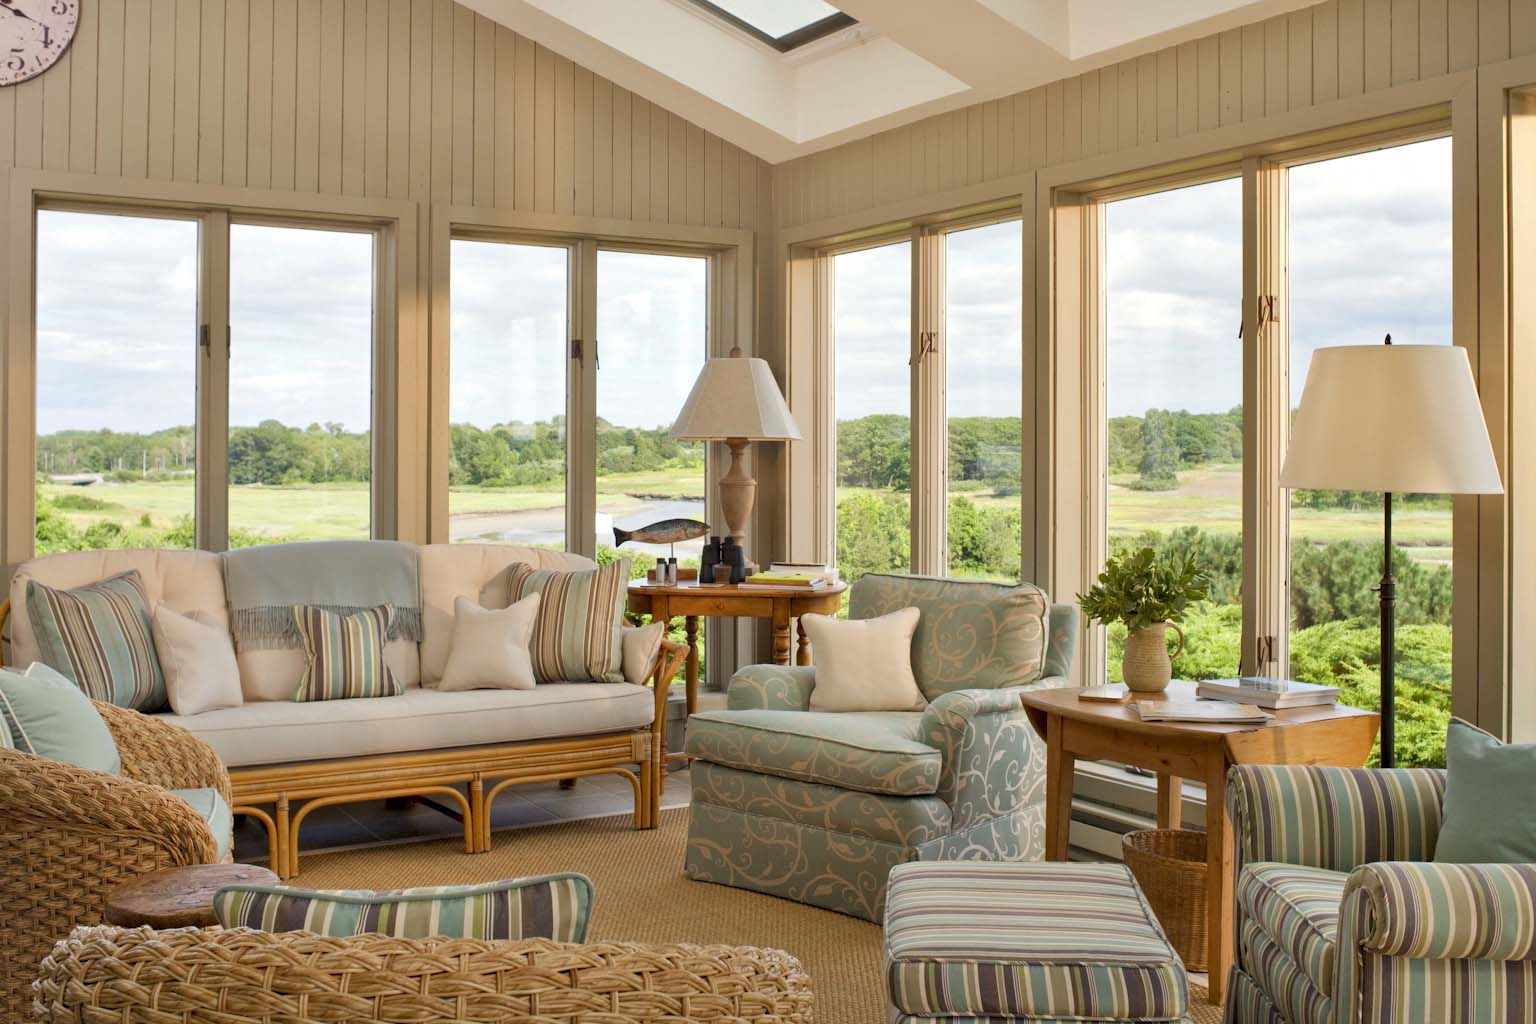 modern sunroom furniture. Adorable Interior Country Modern Neutral Beige Brown Sunroom Design Theme With Big Glass Window Setting And Lovely Calm Colored Furniture Se.